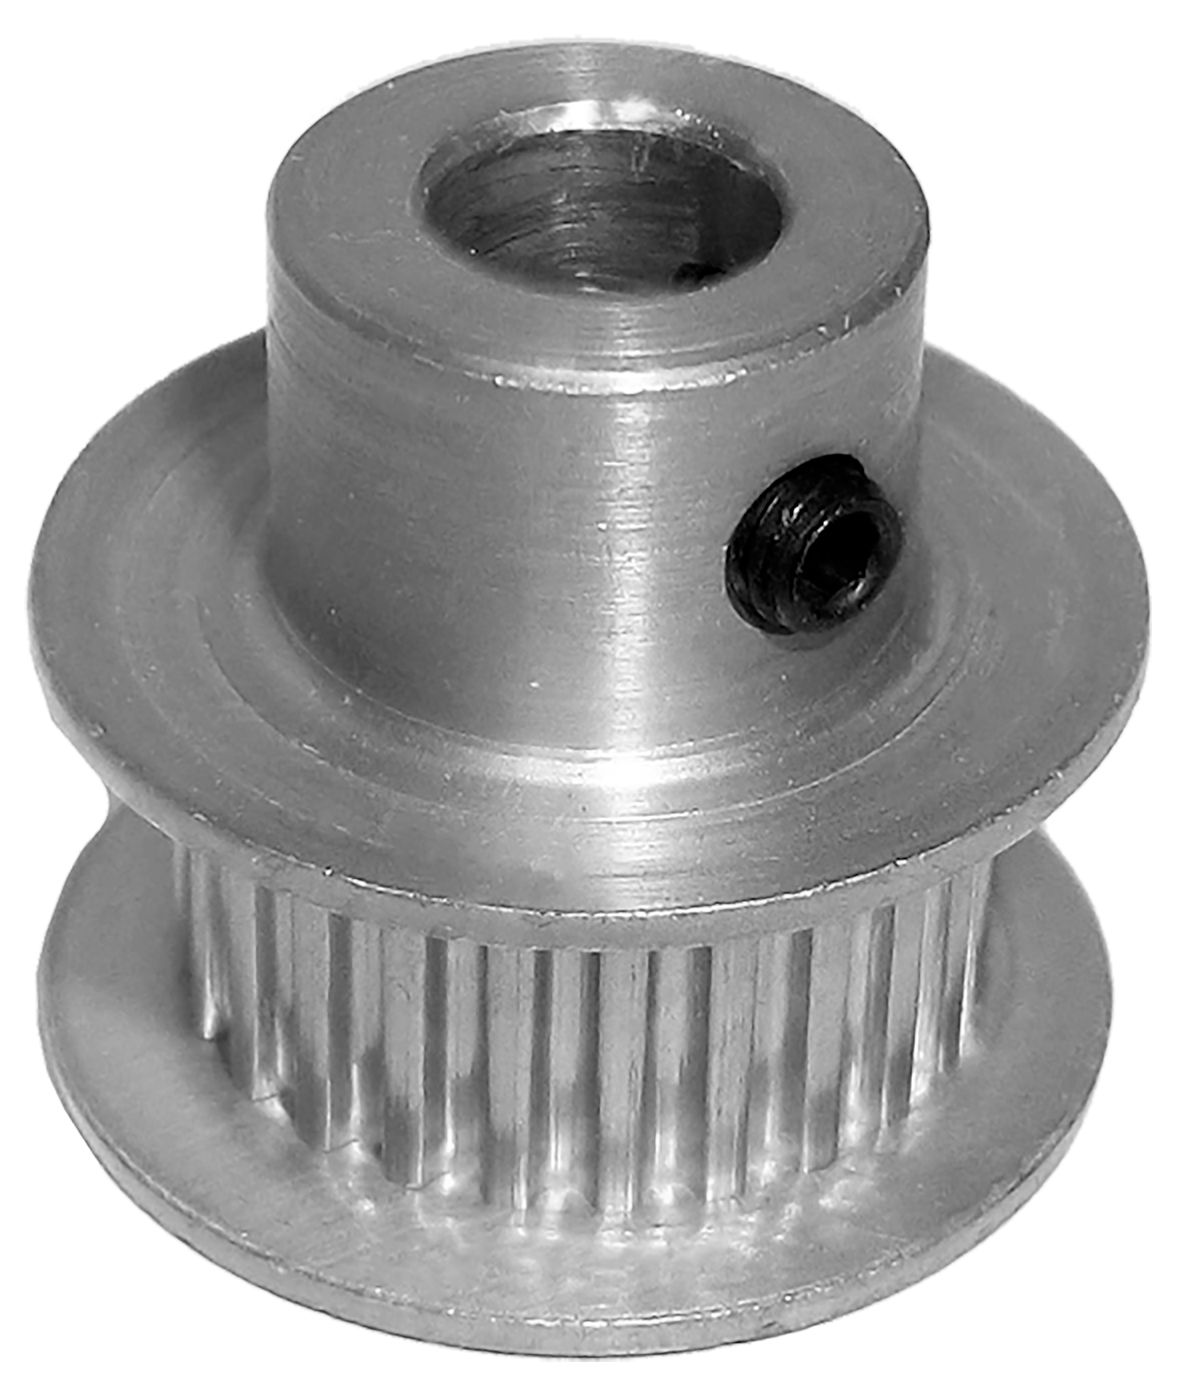 56-2P06-6FA3 - Aluminum Powerhouse® Pulleys